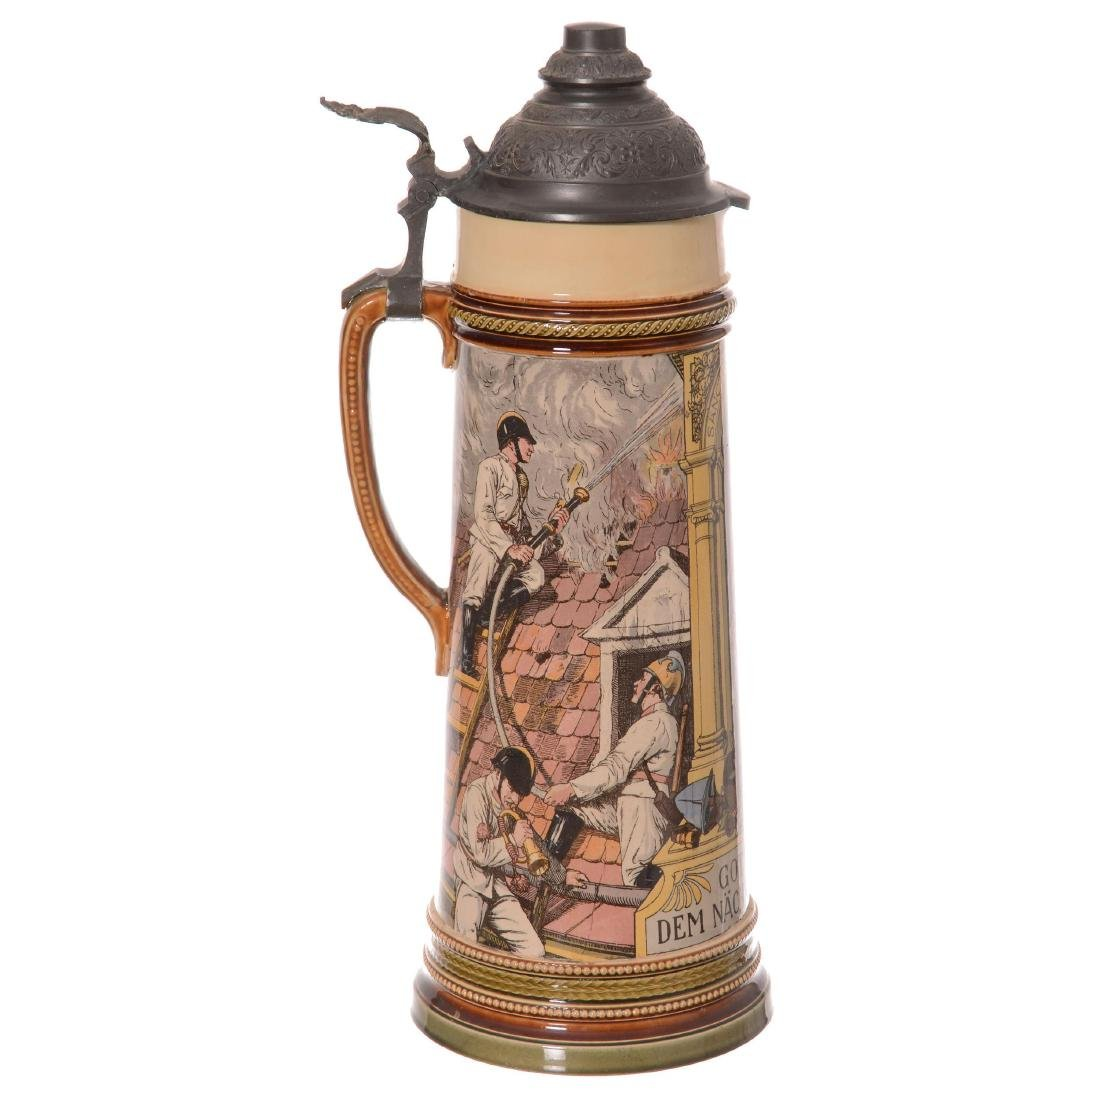 Mettlach German Stein